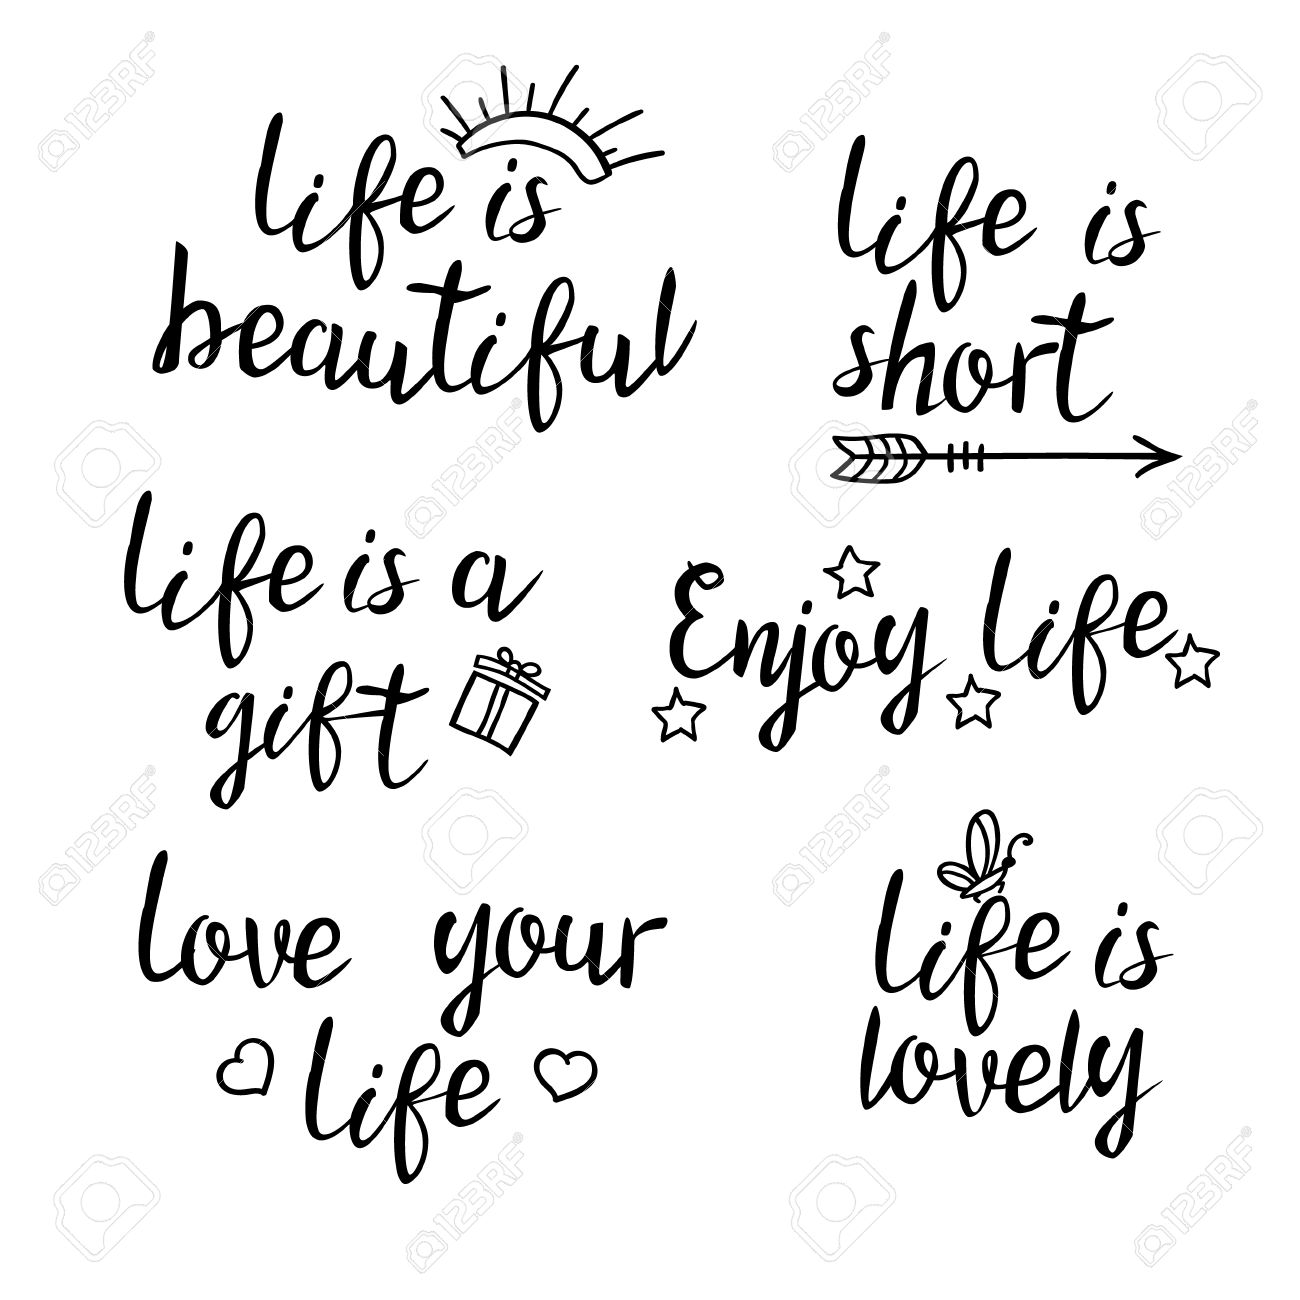 Life Is Beautiful Quotes Lettering Life Quotescalligraphy Inspirational Quote About